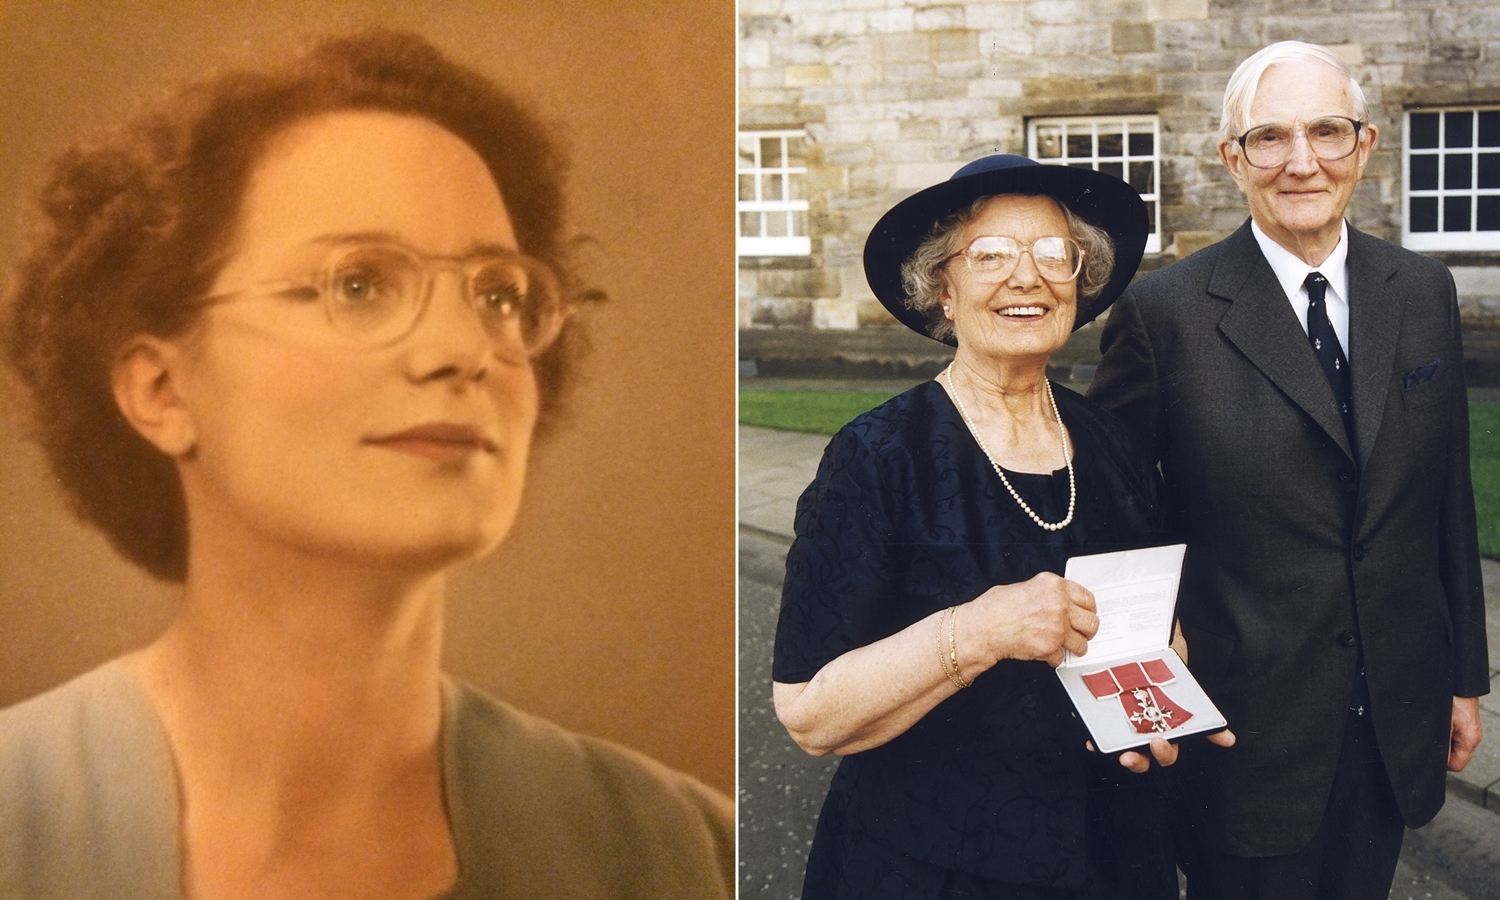 Jean married Derek Thomson in 1946 and received an MBE in 1999.